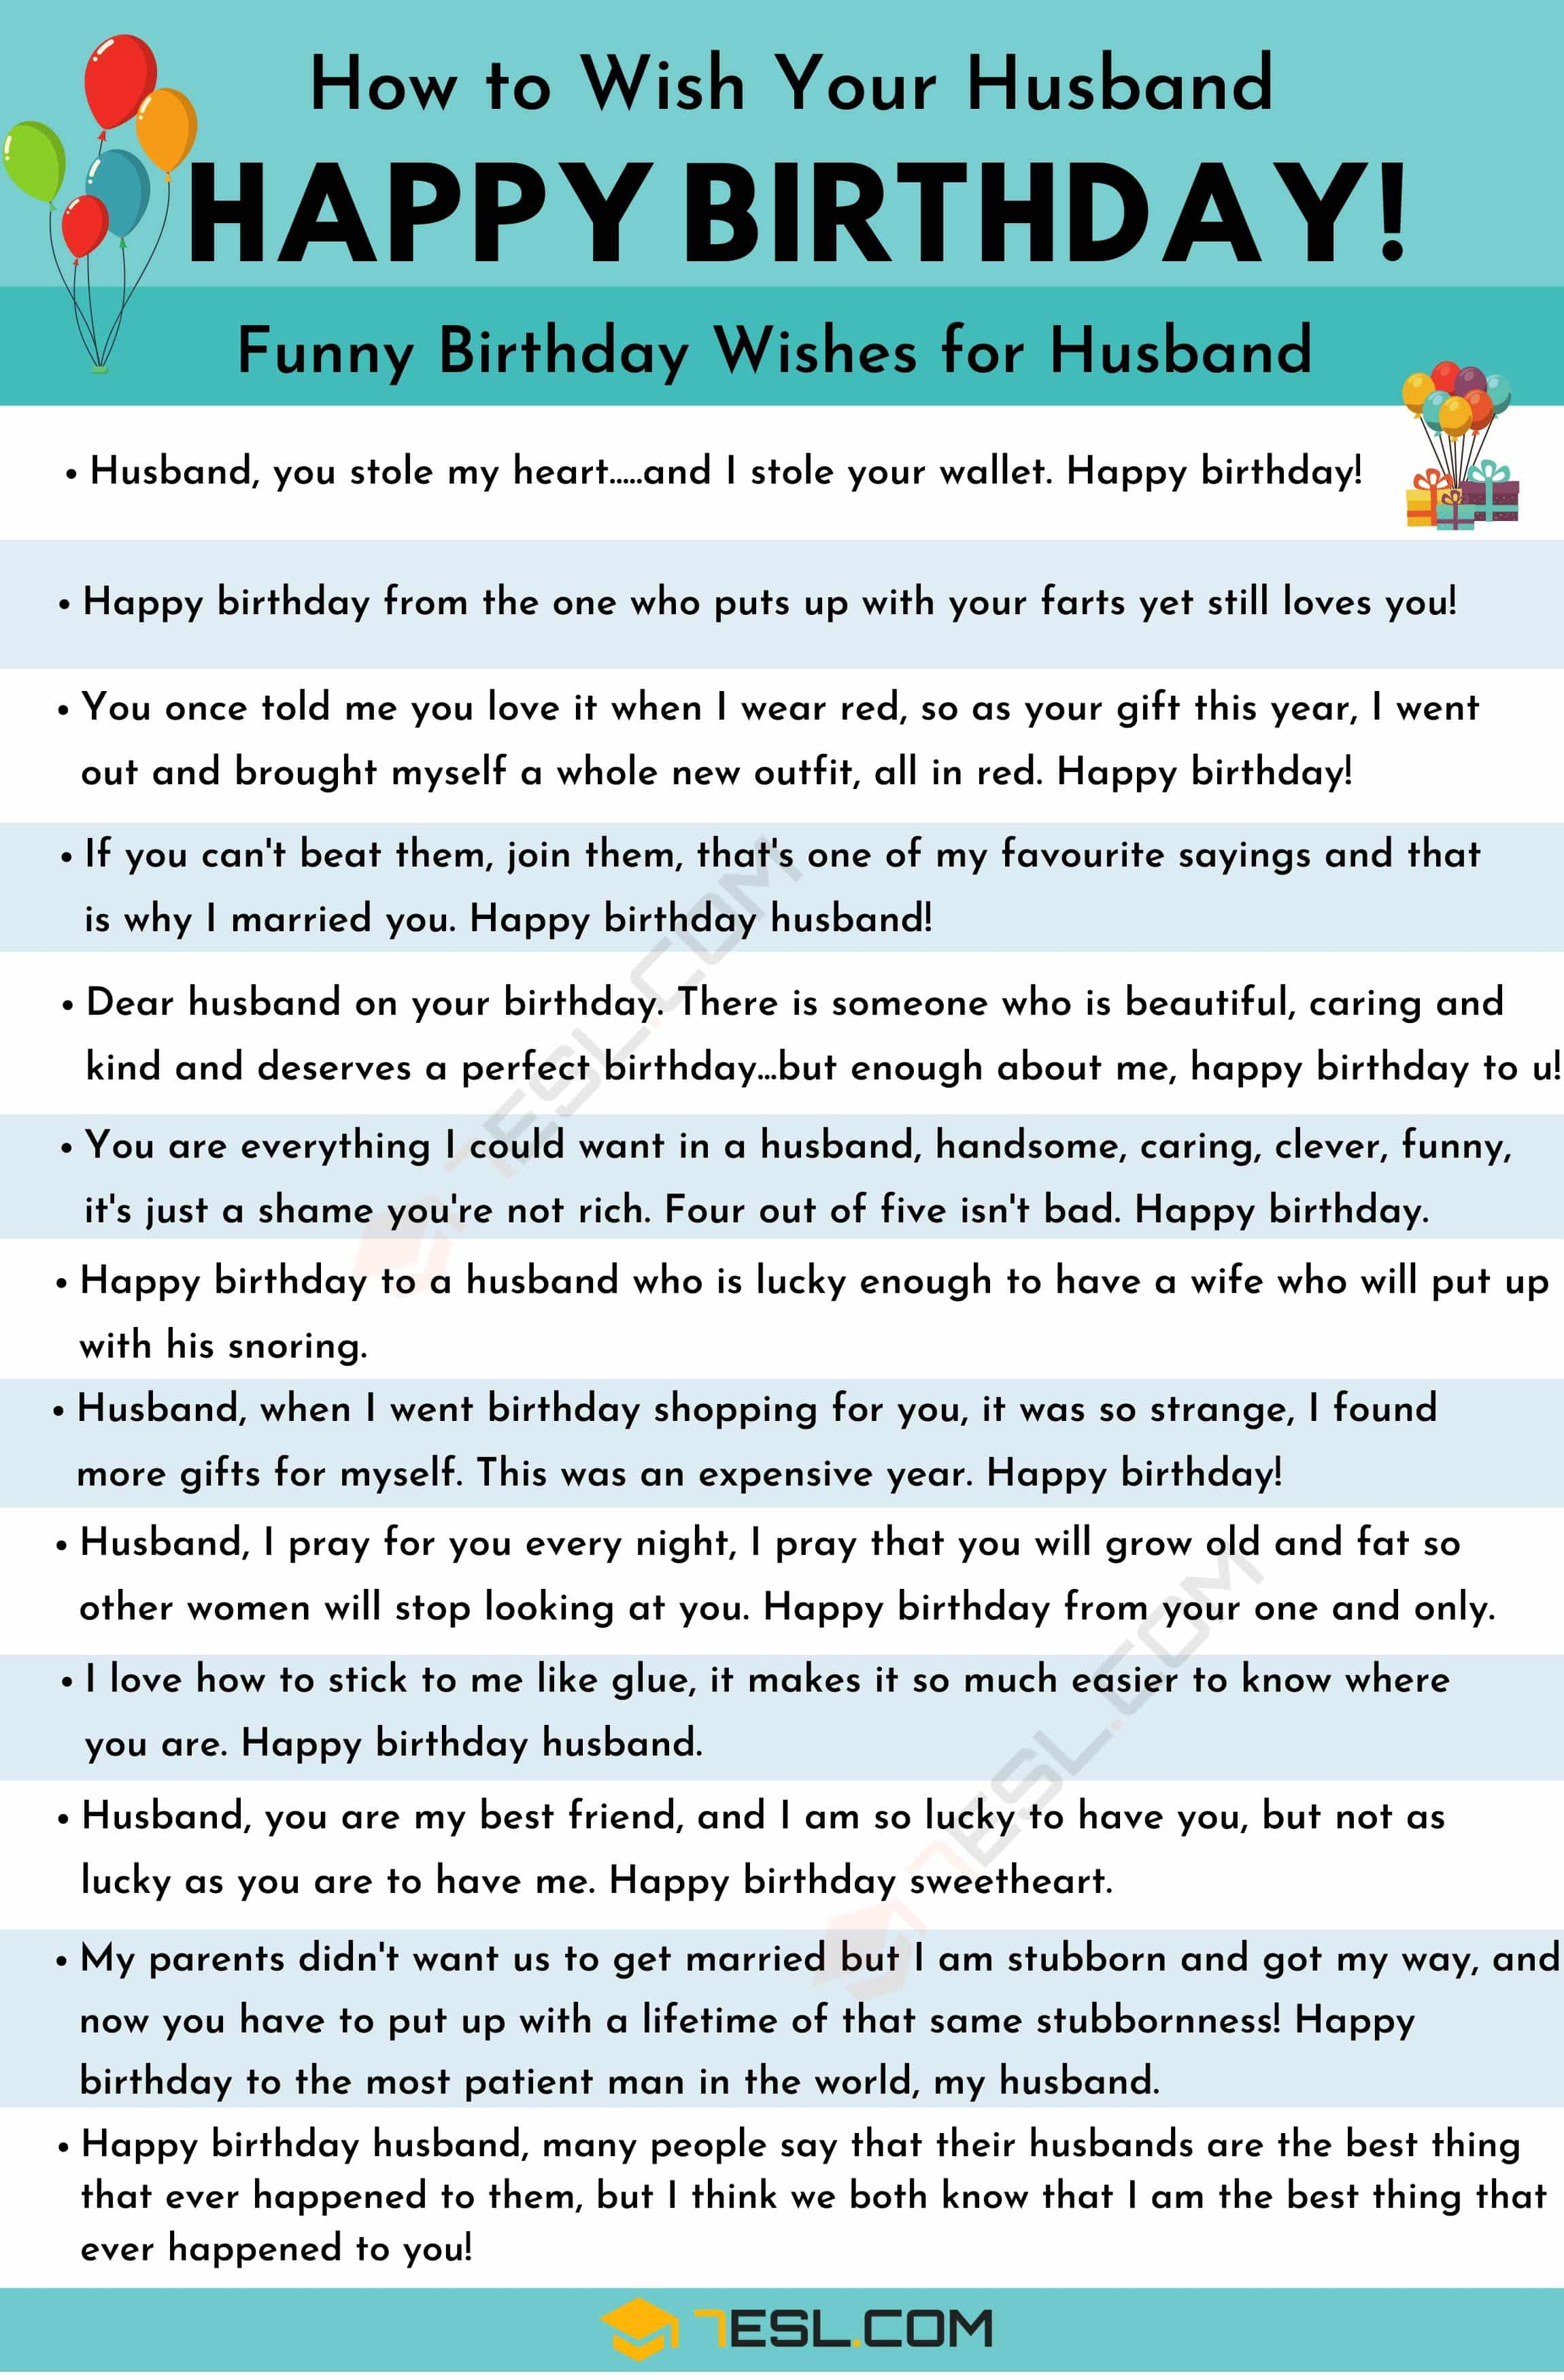 Happy Birthday Husband: 30+ Best Birthday Wishes for Your Husband